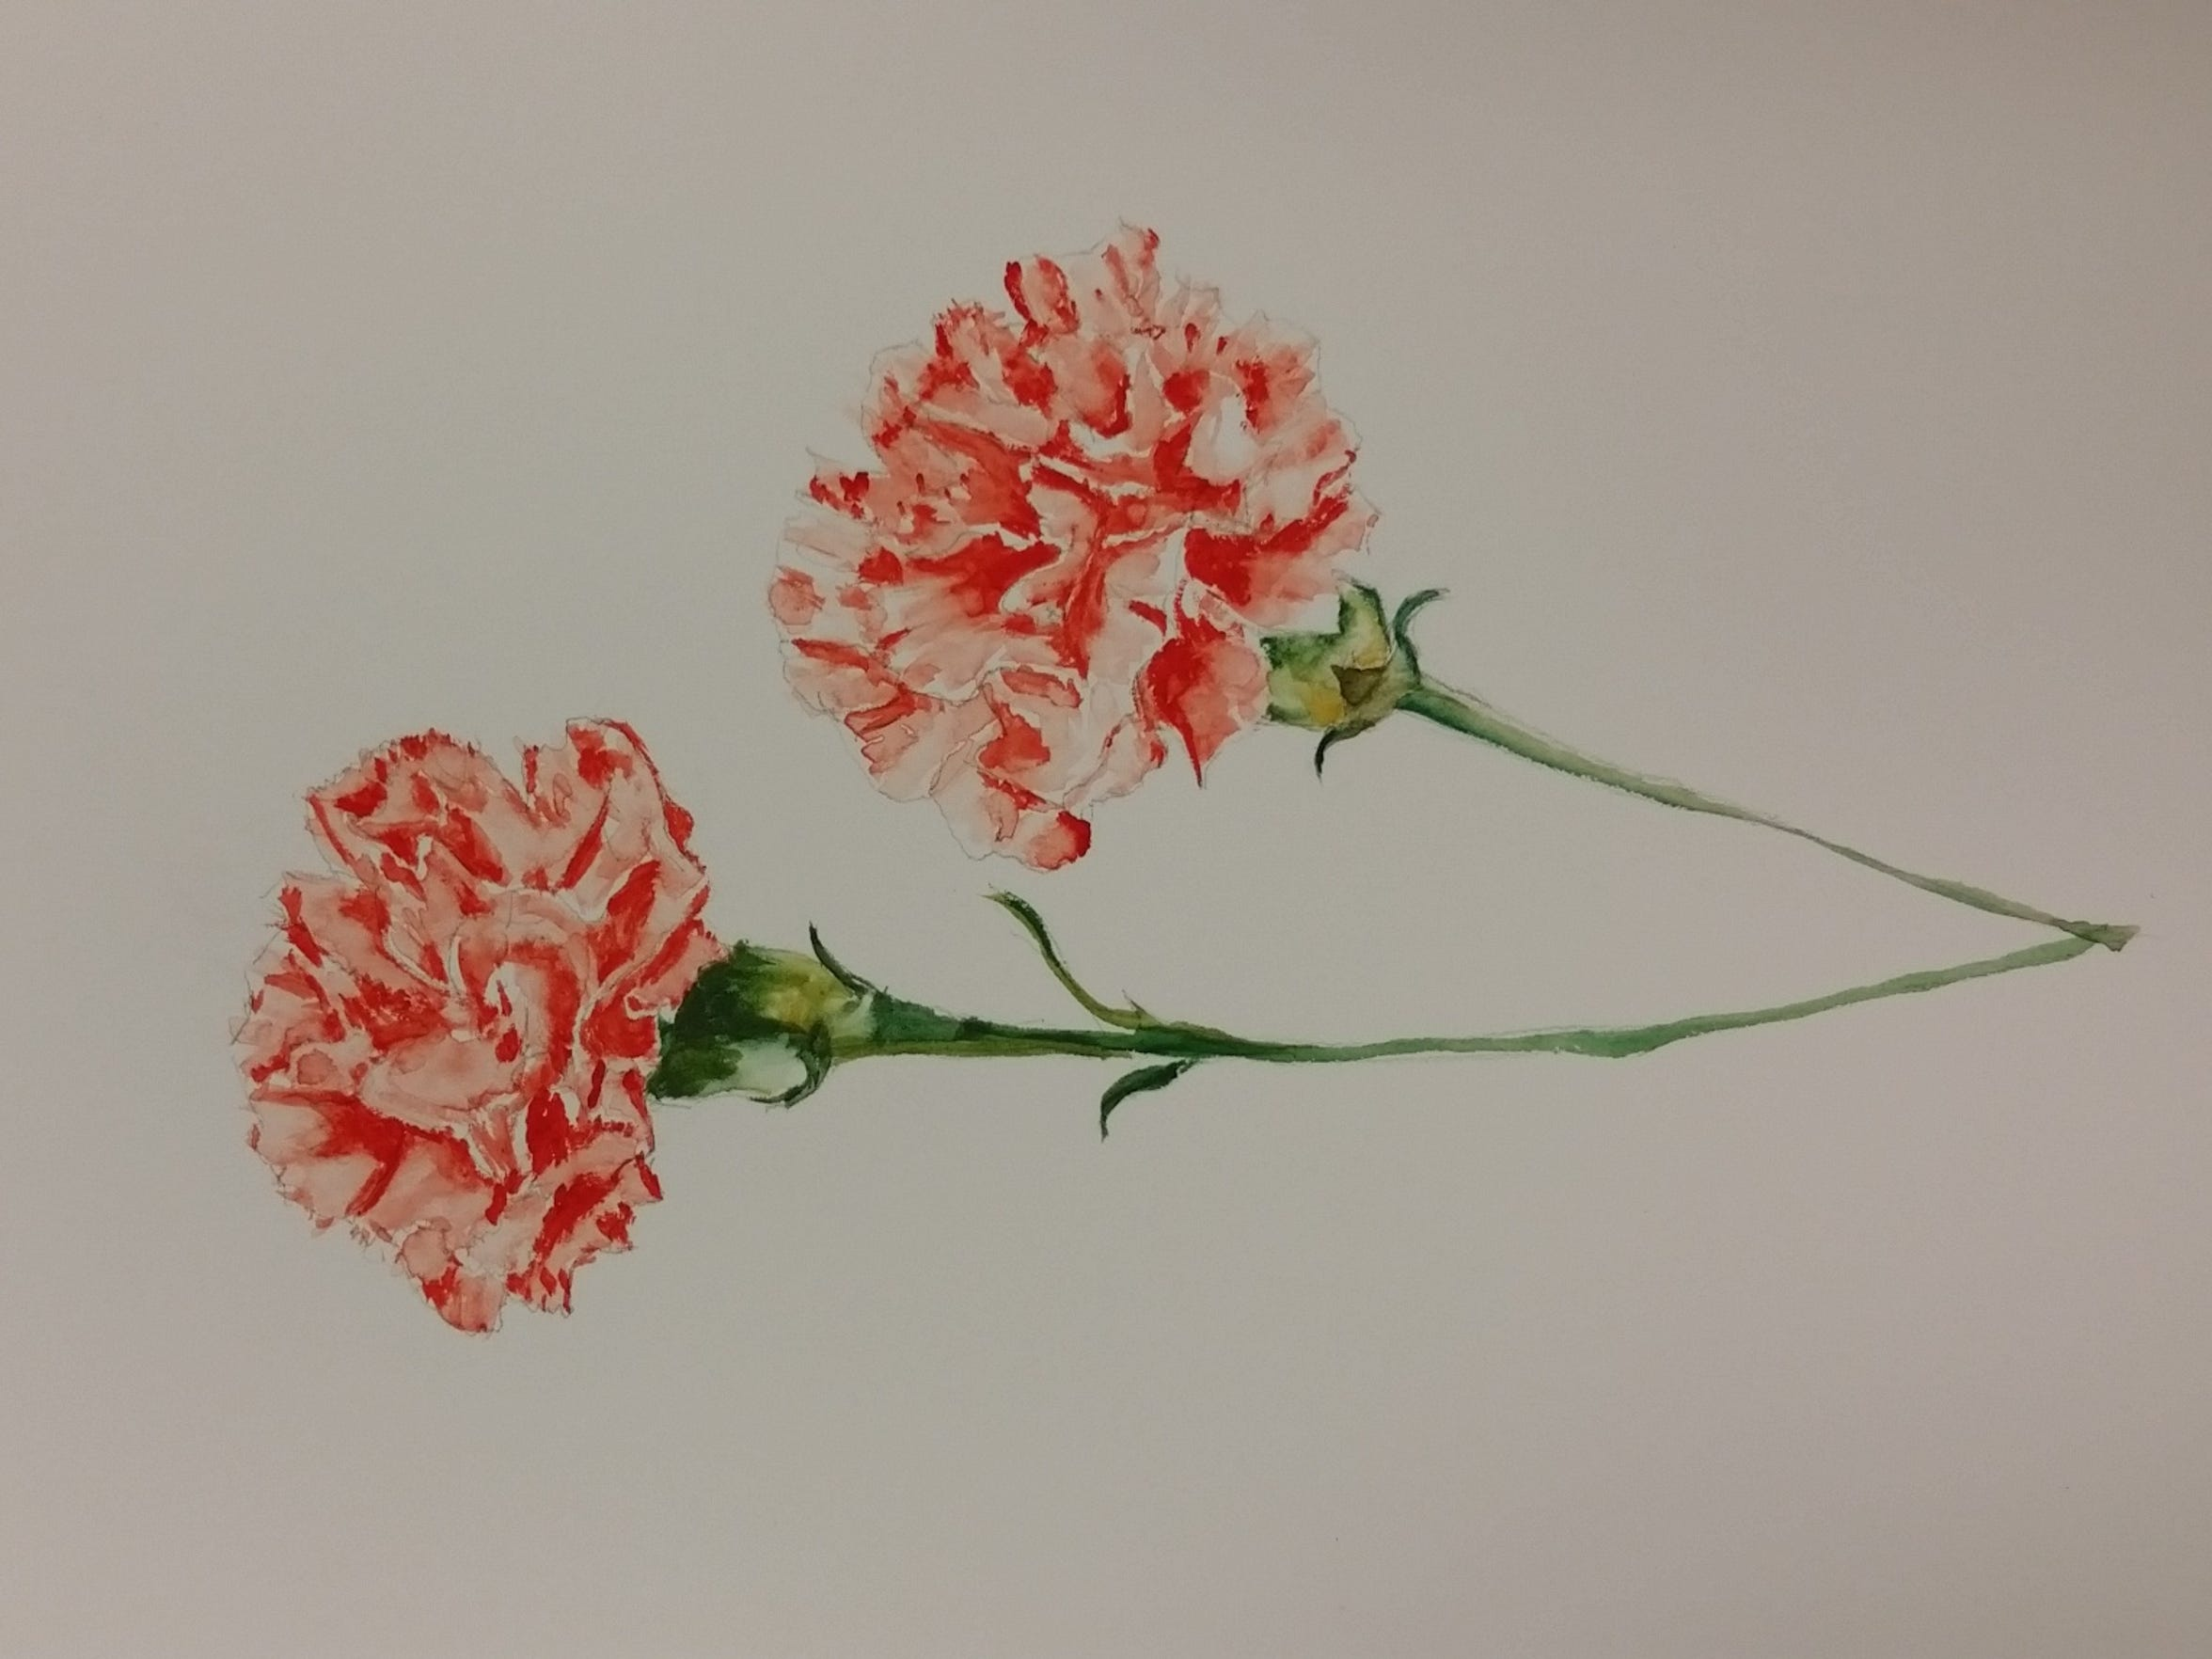 January's birthday flower is the carnation, which blooms in a variety of colors, each holding its own meaing. Pink carnations are said to be associated with Capricorns born in this month, symbolizing distinction, fascination and pure love.